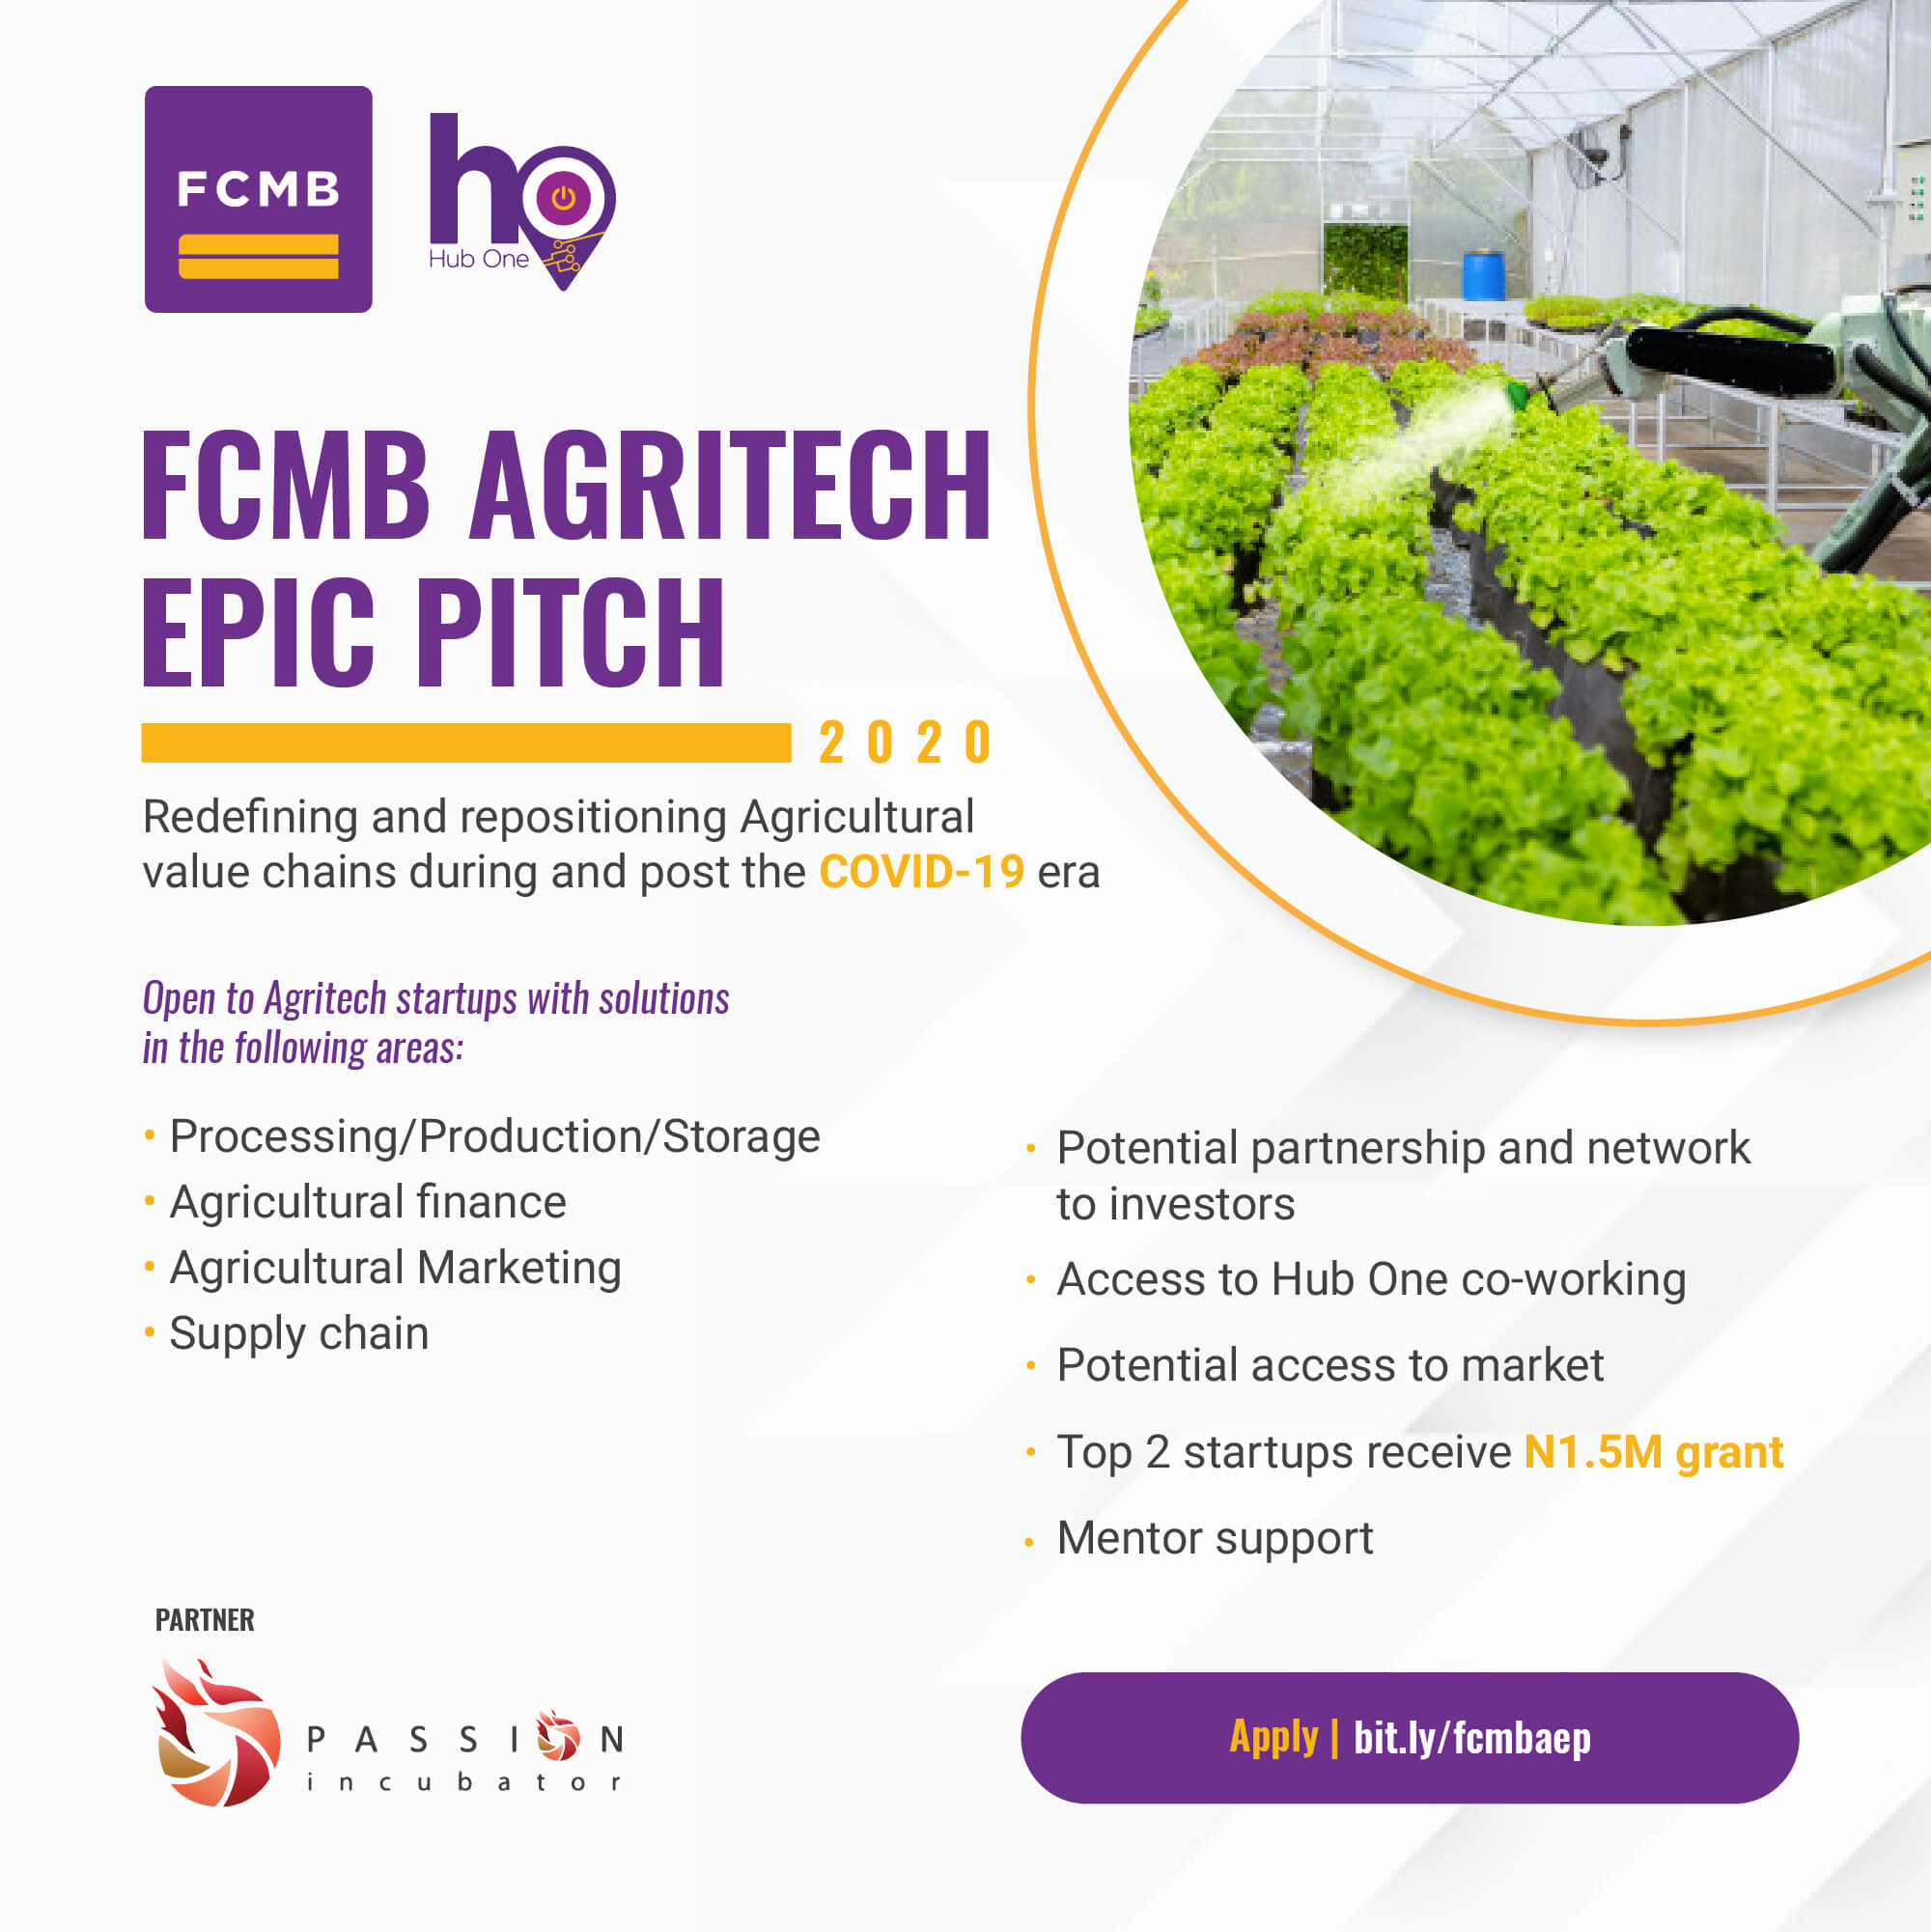 Agritech EPIC Pitch by FCMB and Passion Incubator